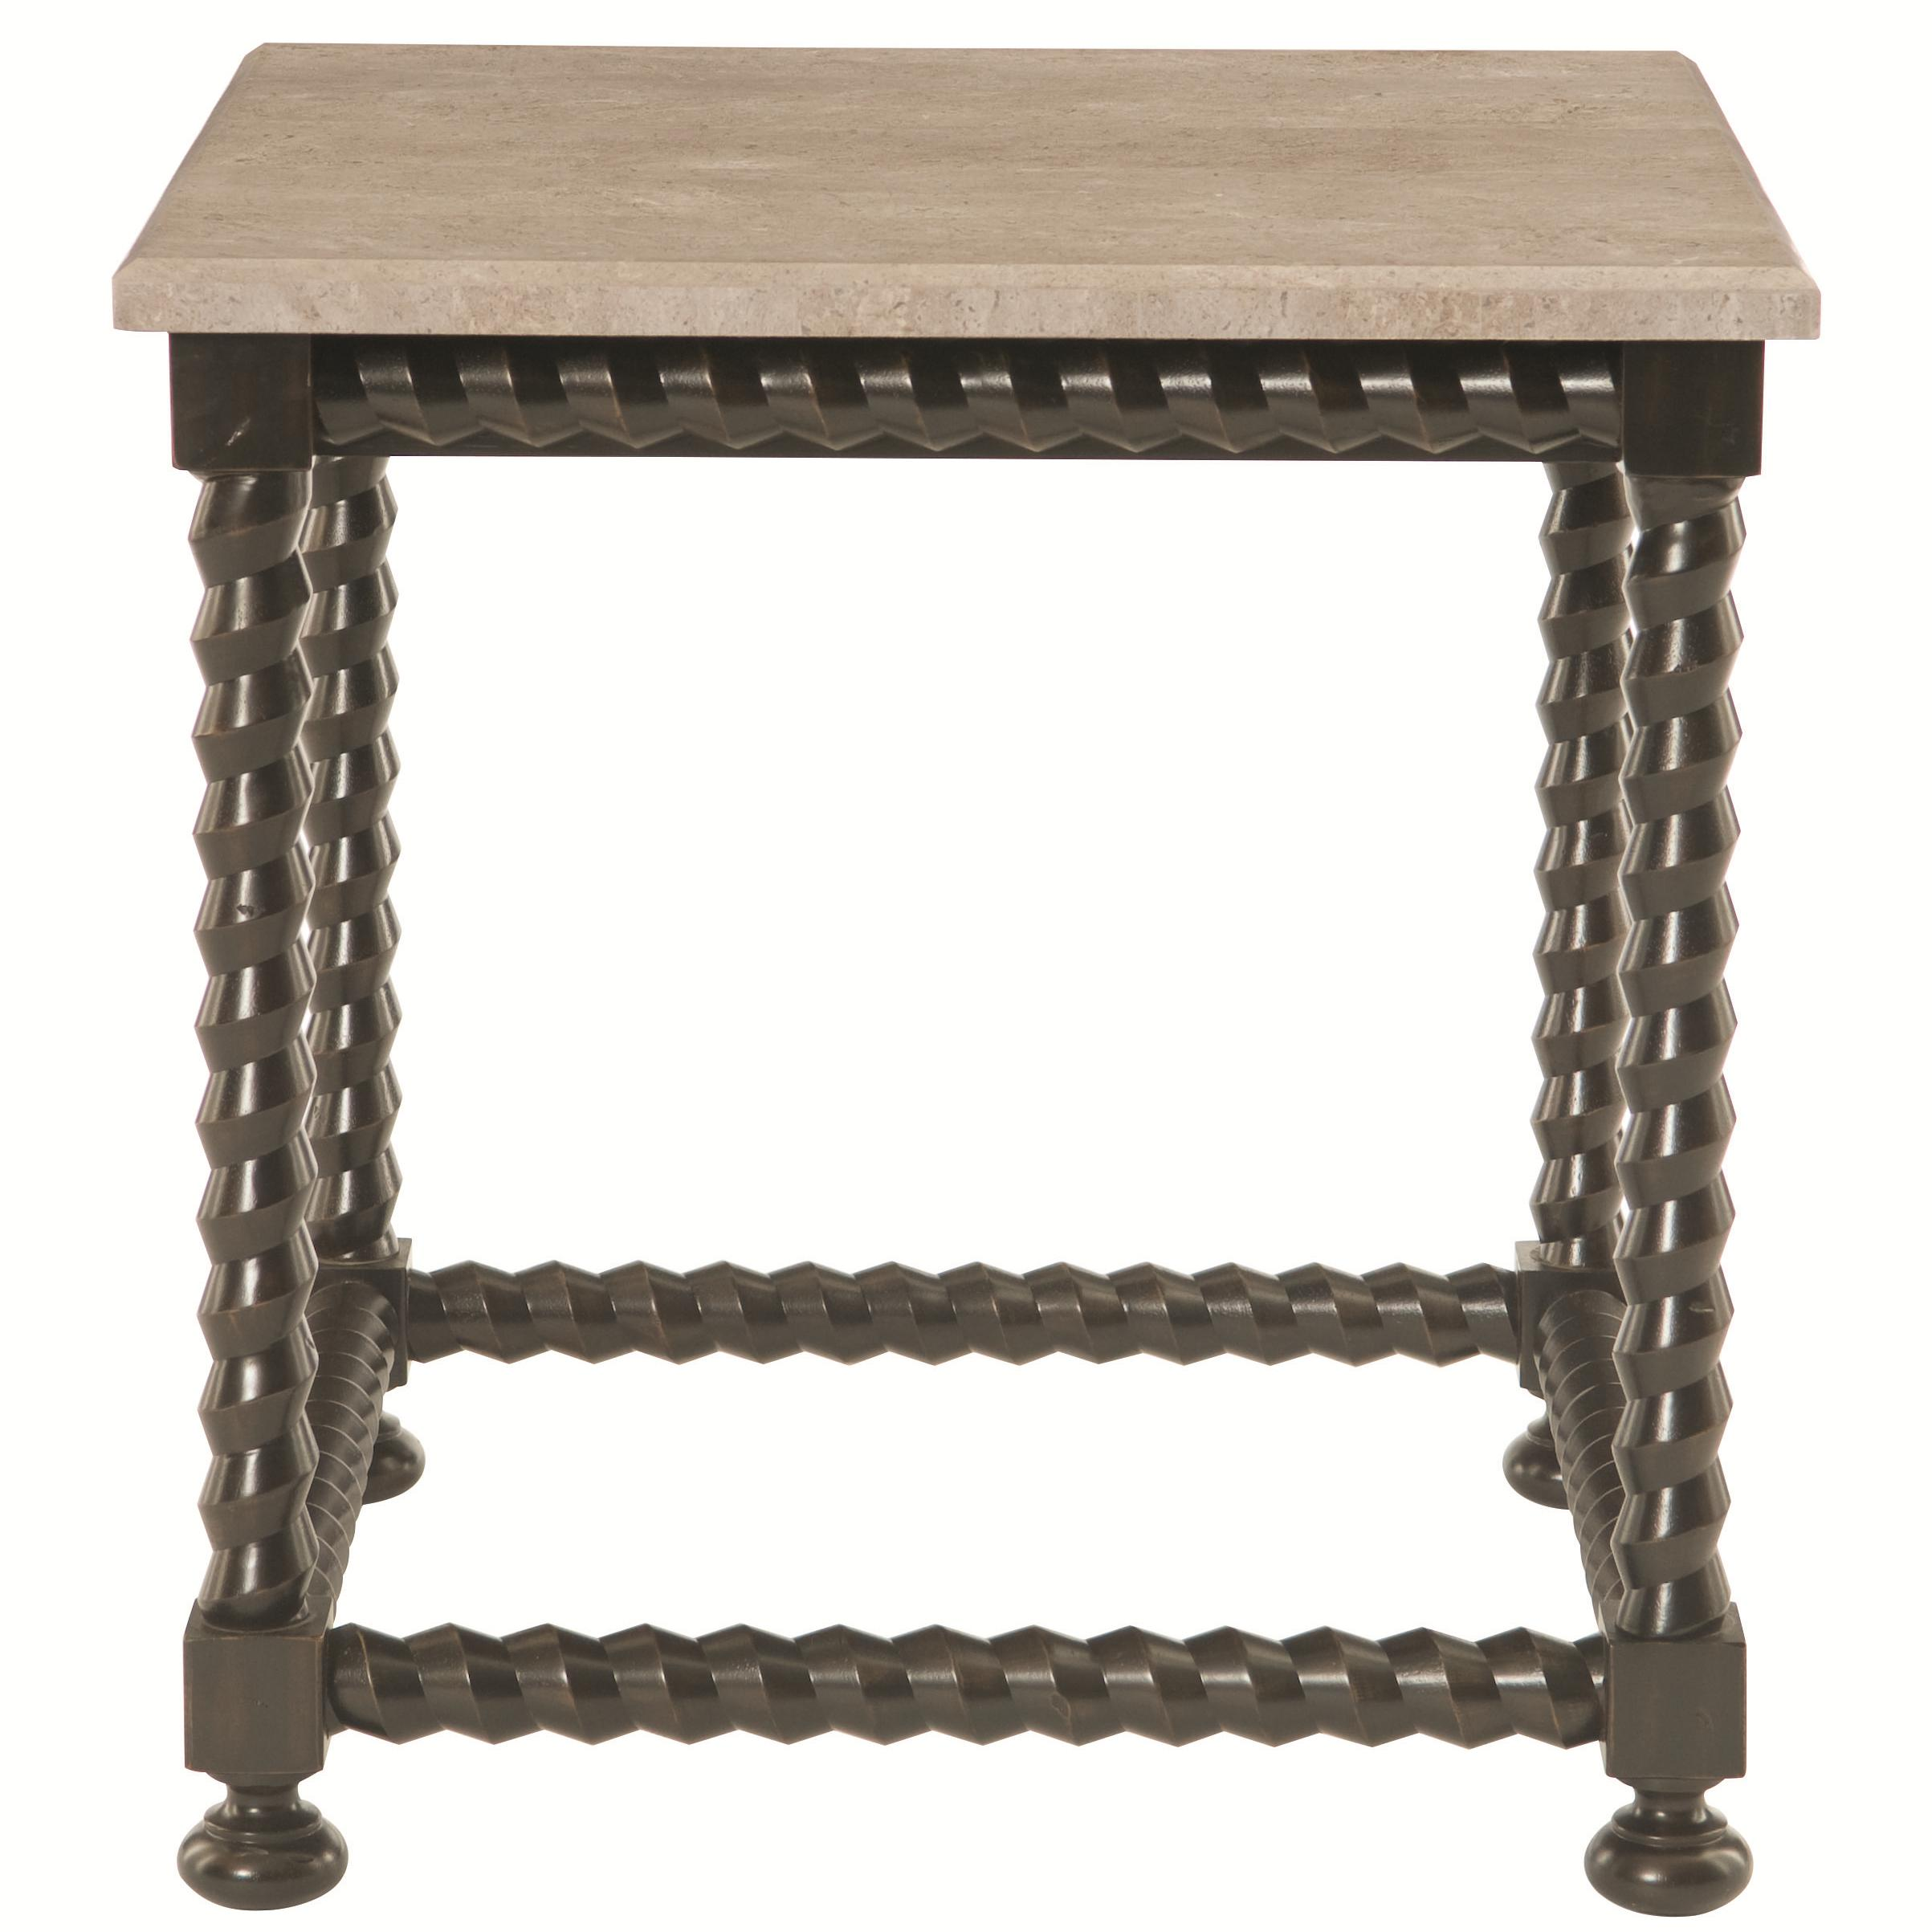 Bernhardt Alcott Ave Alcott Ave 2 Piece Square End Table - Item Number: 460-111+T